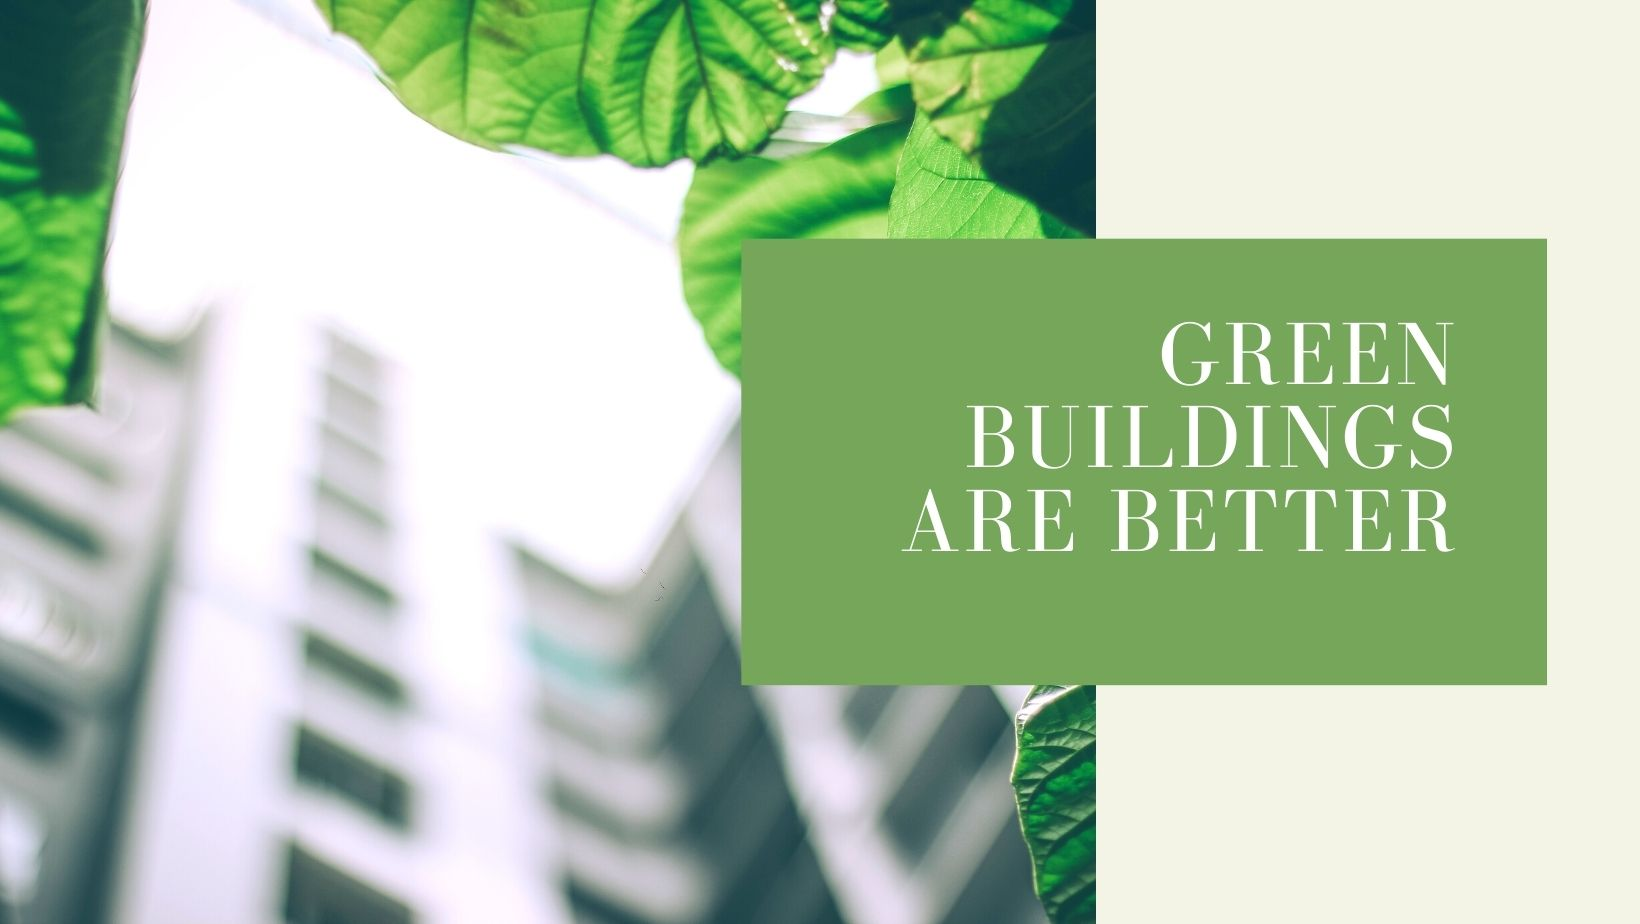 Green buildings are better